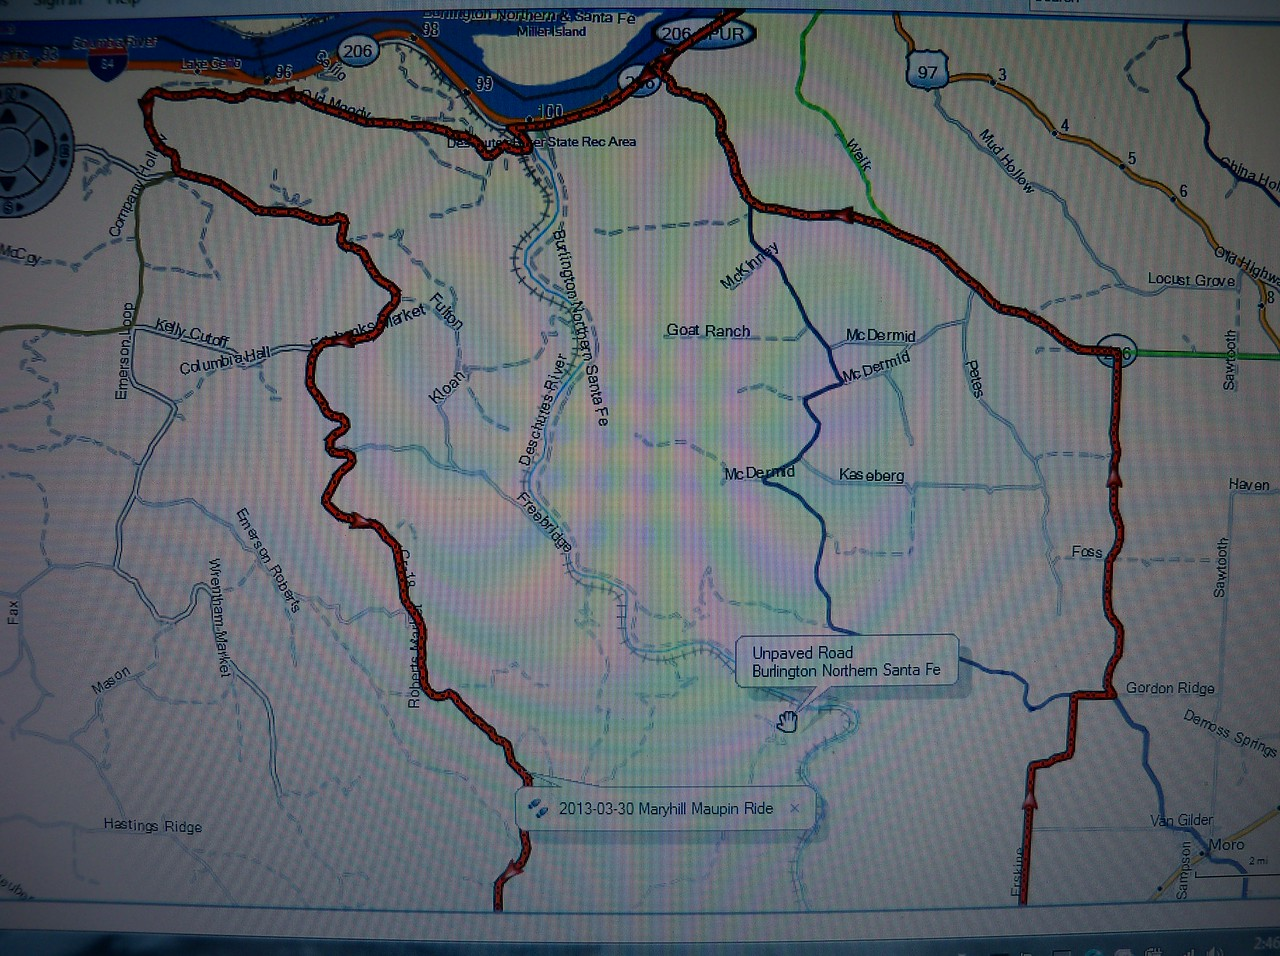 We rode Gordon Ridge a few days later... It's the dark blue route in the middle...